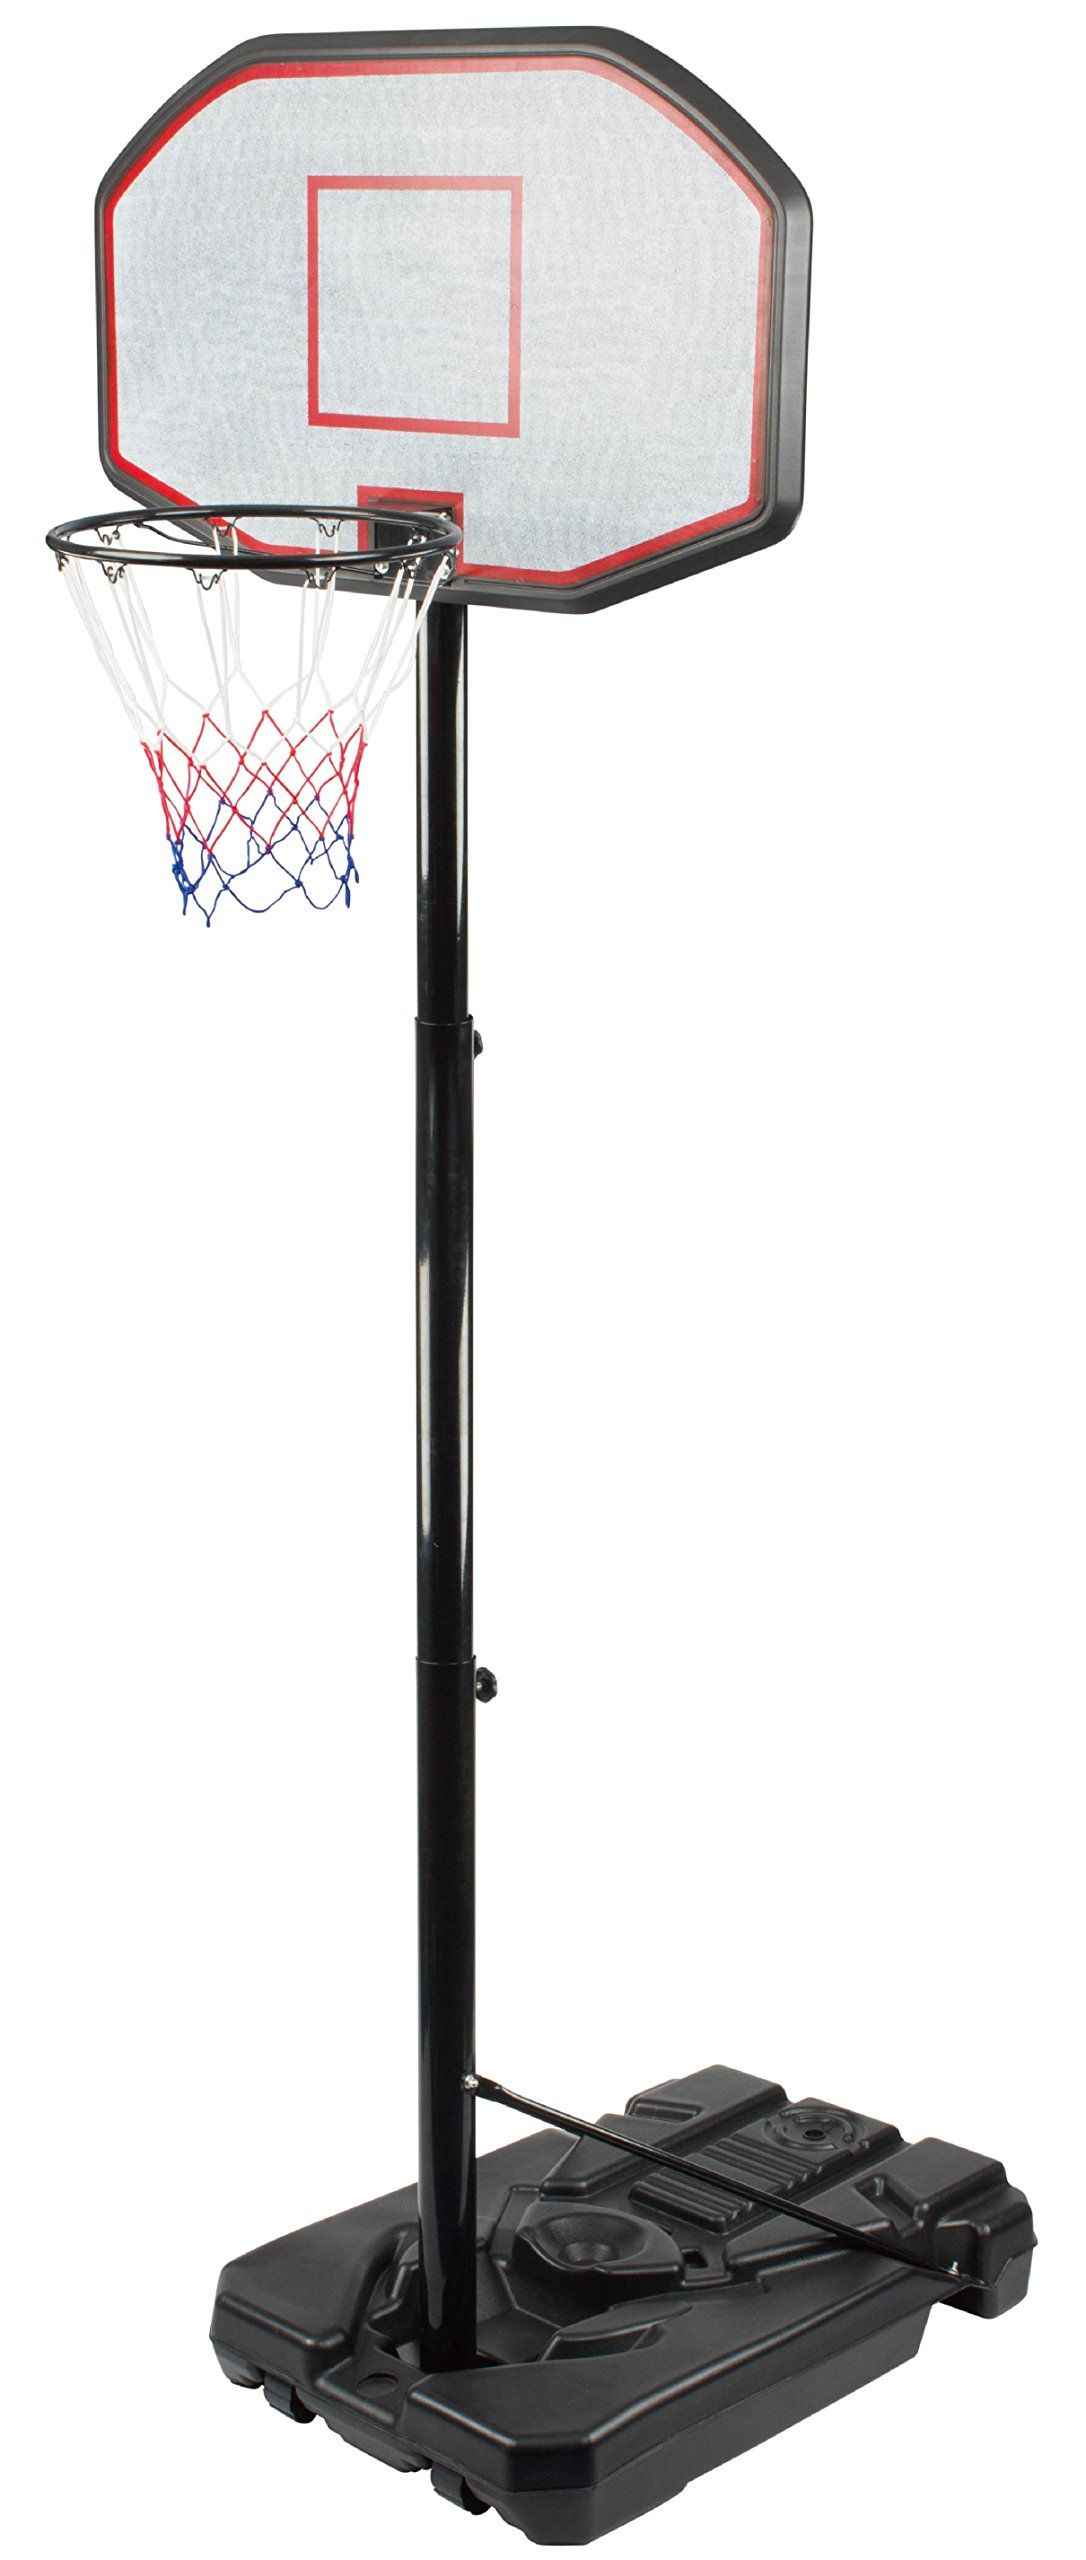 Movement God Portable Basketball System With 44 Backboard And Adjustable Pole For Outdoor Court Or Backyards Back Adjustable Pole Basketball Systems Portable